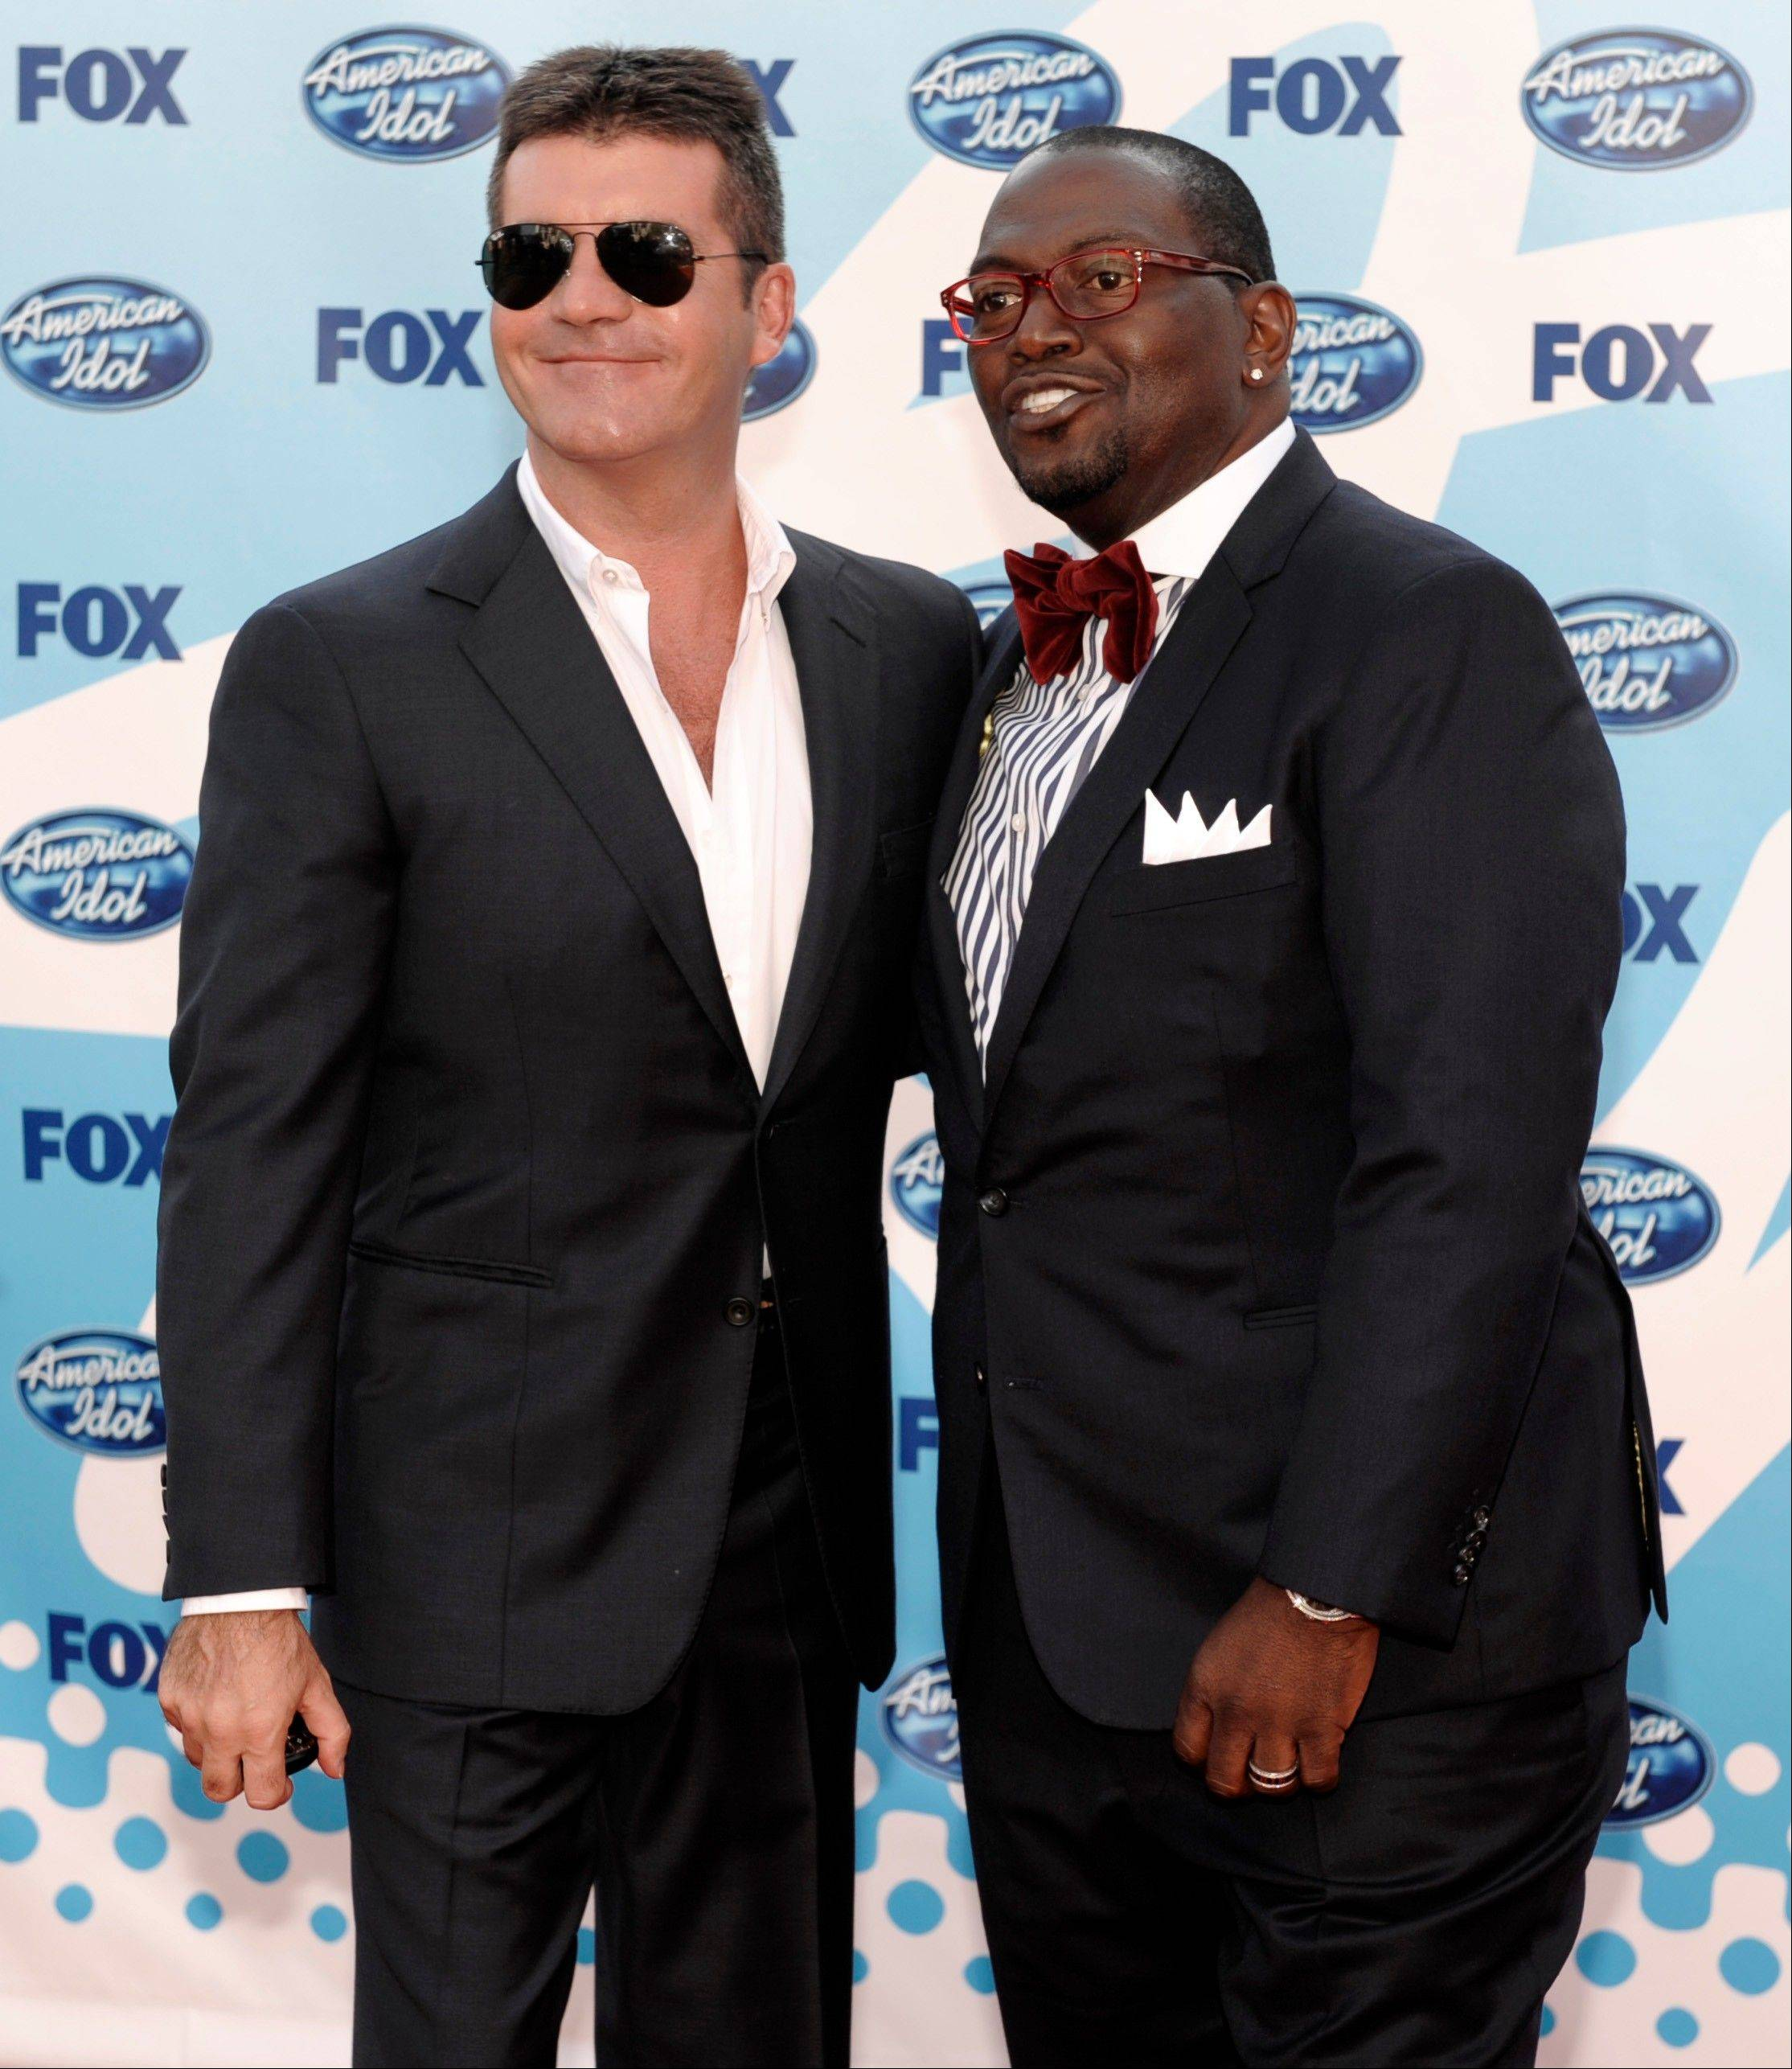 "In this May 20, 2009 file photo, Judges Simon Cowell, left, and Randy Jackson arrive at the ""American Idol"" finale in Los Angeles. Jackson's announcement on Thursday that he was departing the show means producers could plan a proper send-off for the lone remaining original judge soon, much the same way they did for Simon Cowell during the ninth season finale in 2010."